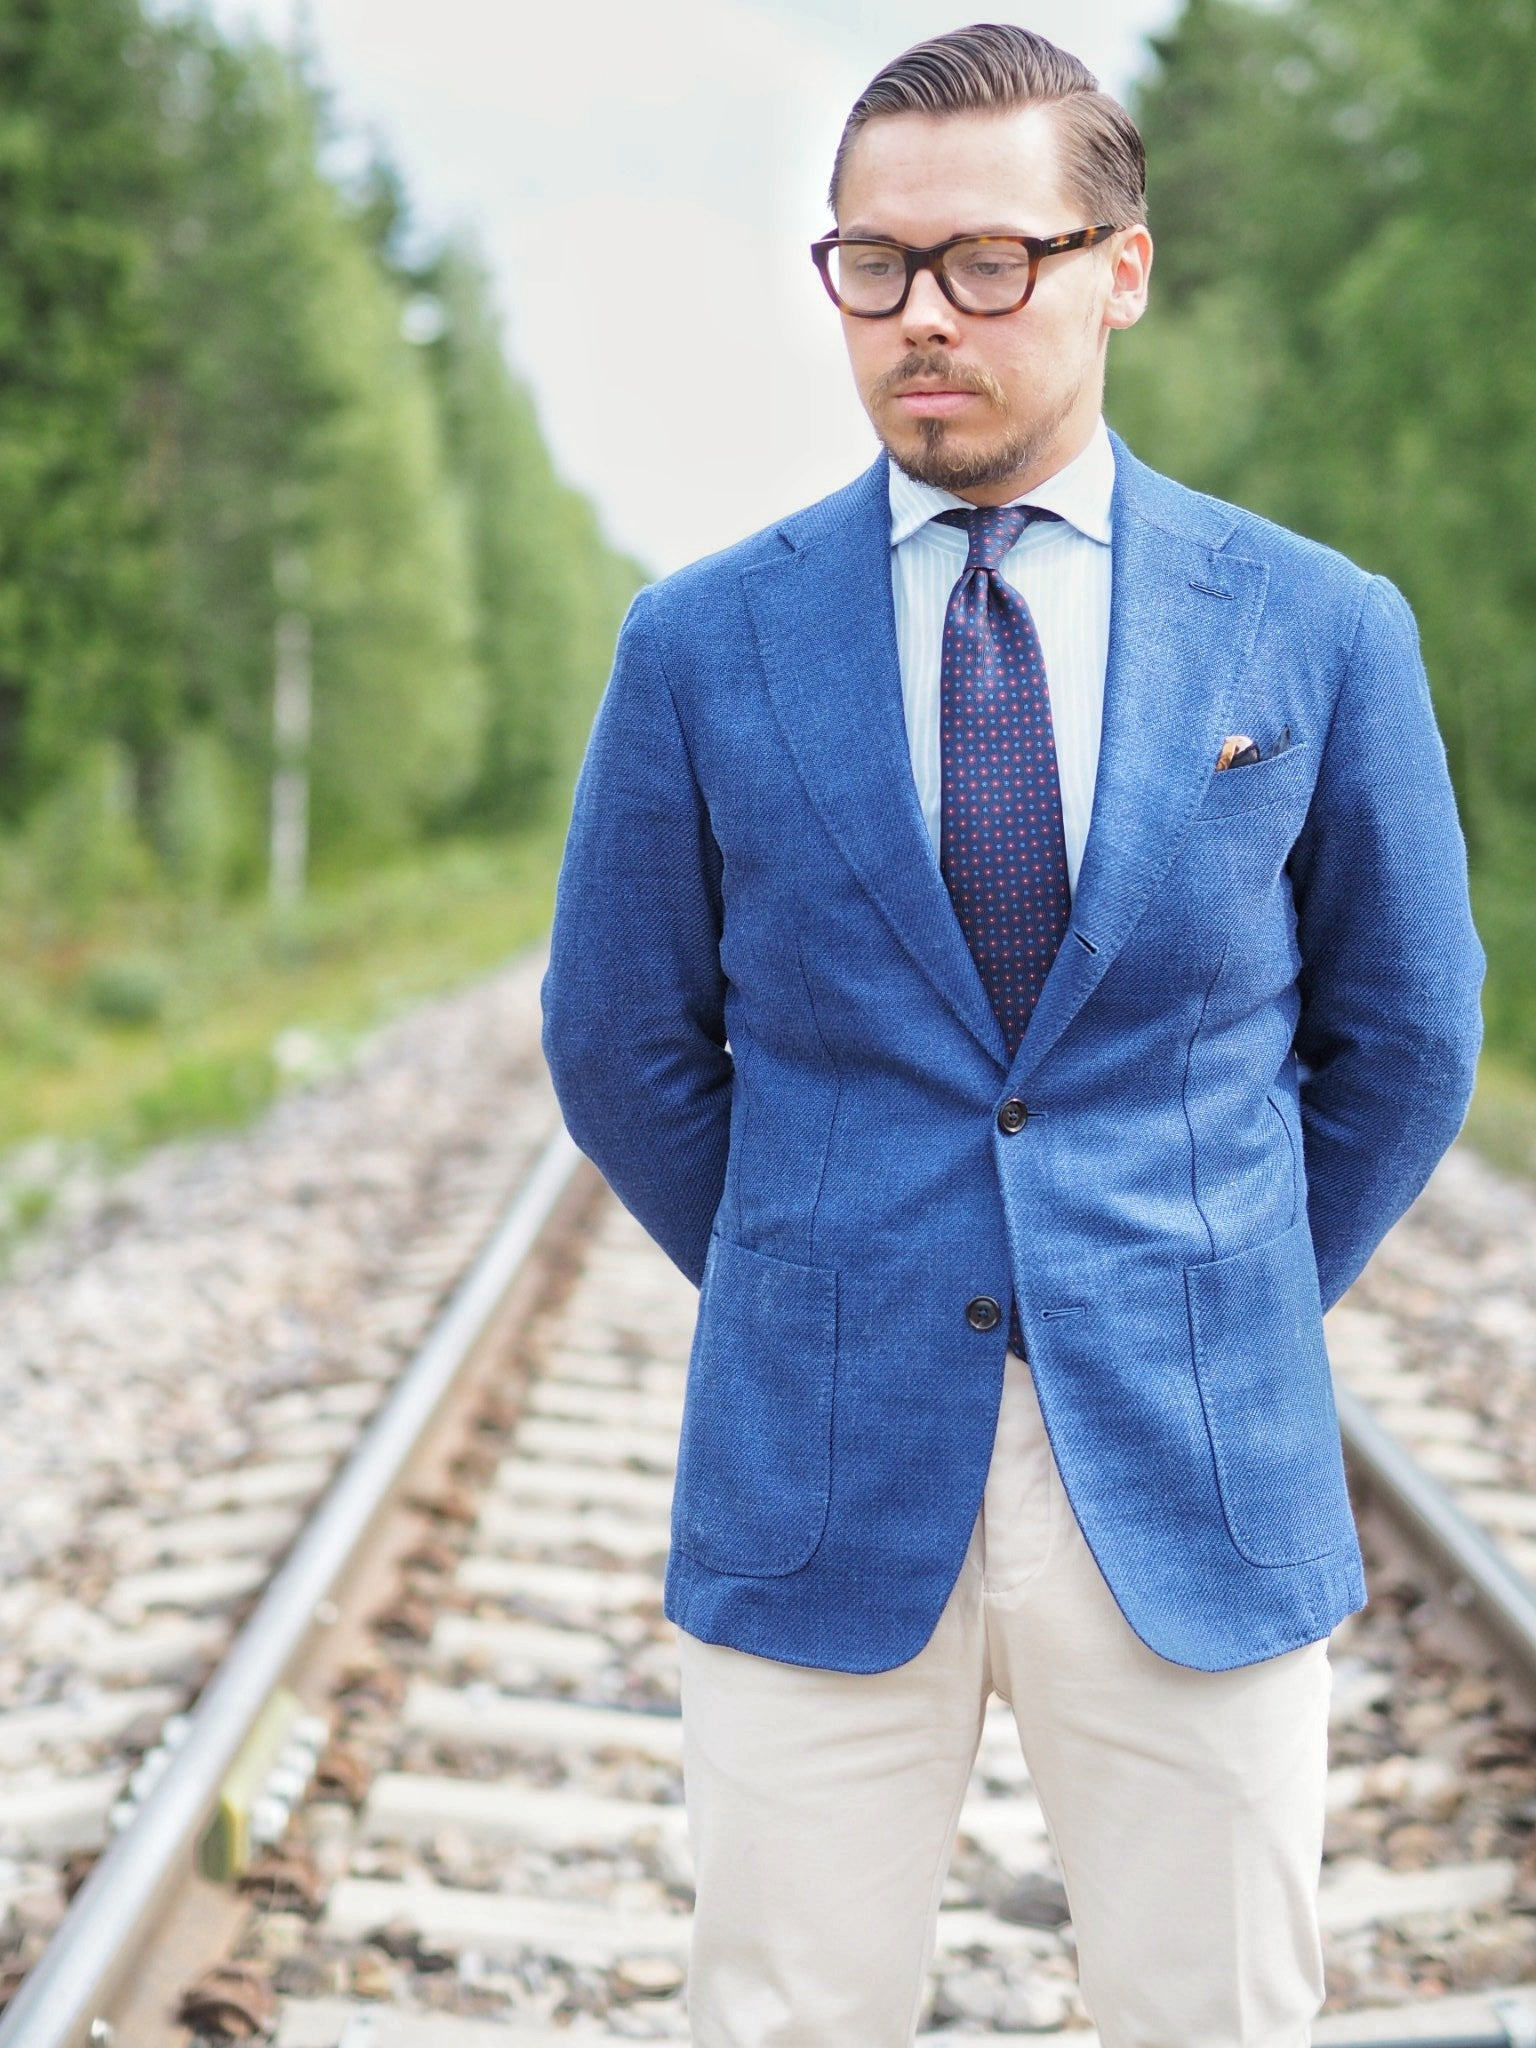 Blue suit jacket as a sport coat - light colored cotton slacks with the mid-blue jacket and printed silk tie